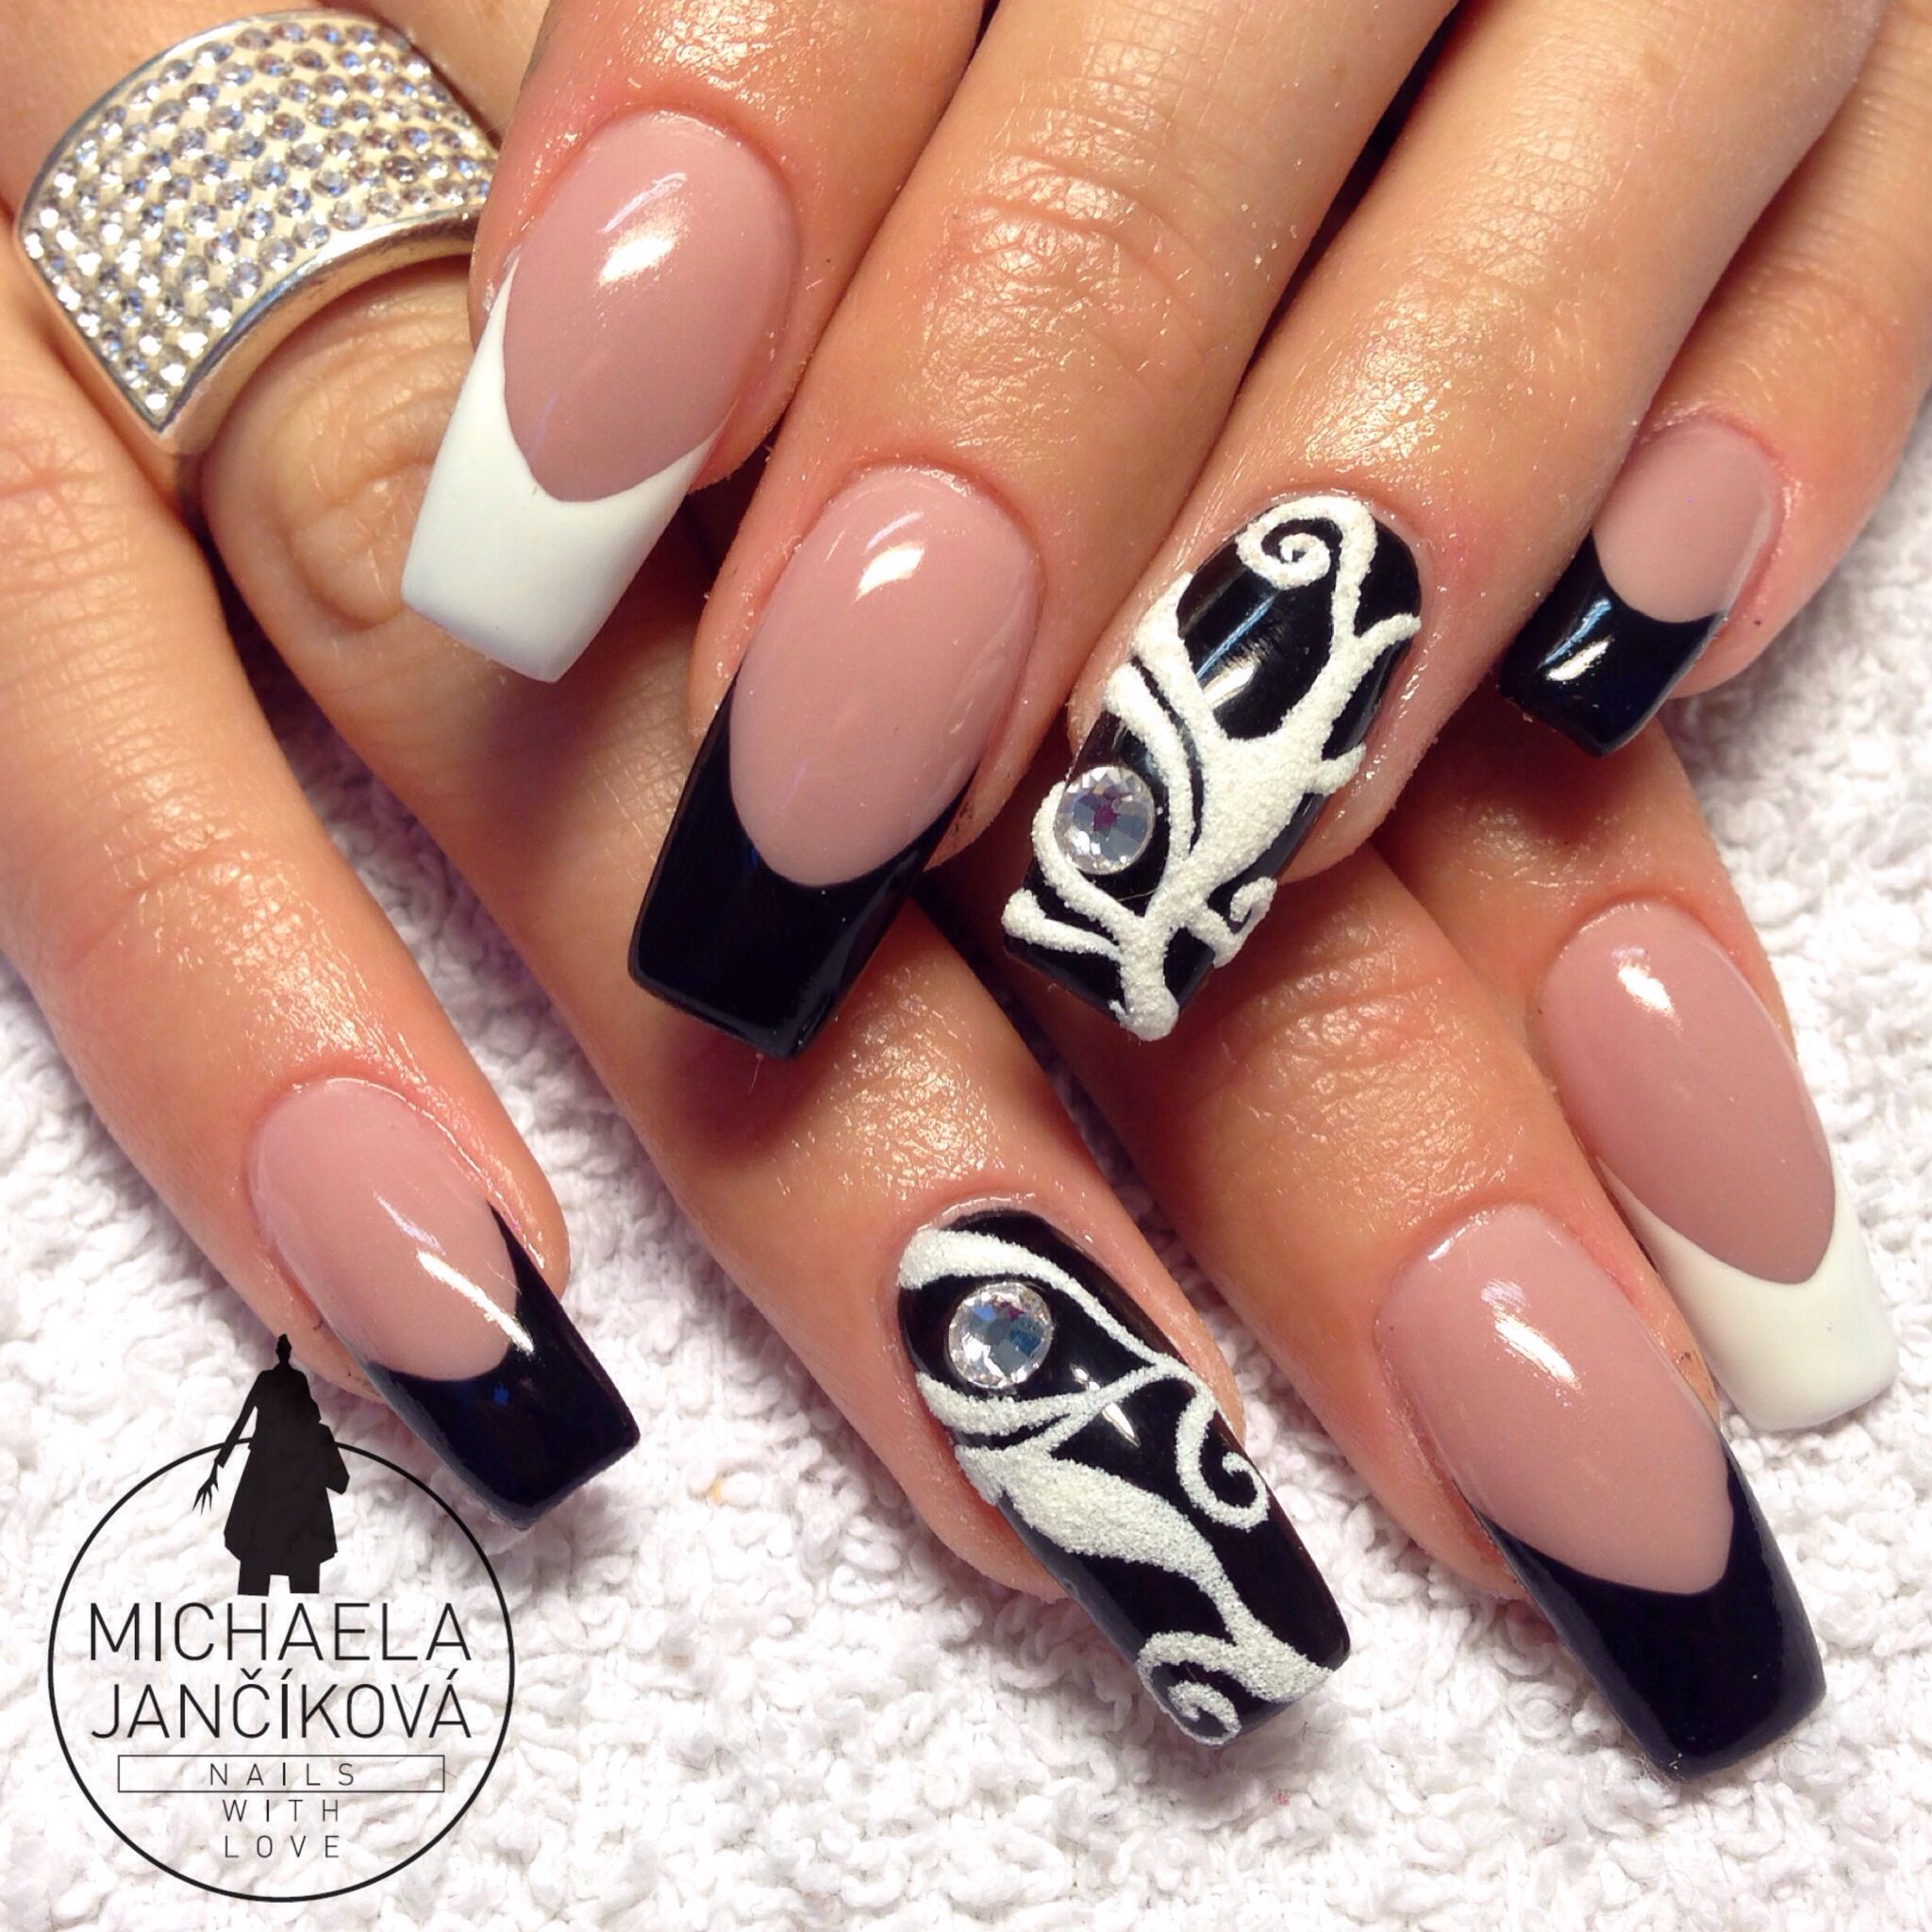 B&W black and white nails, velvety sands and extreme smile line ...